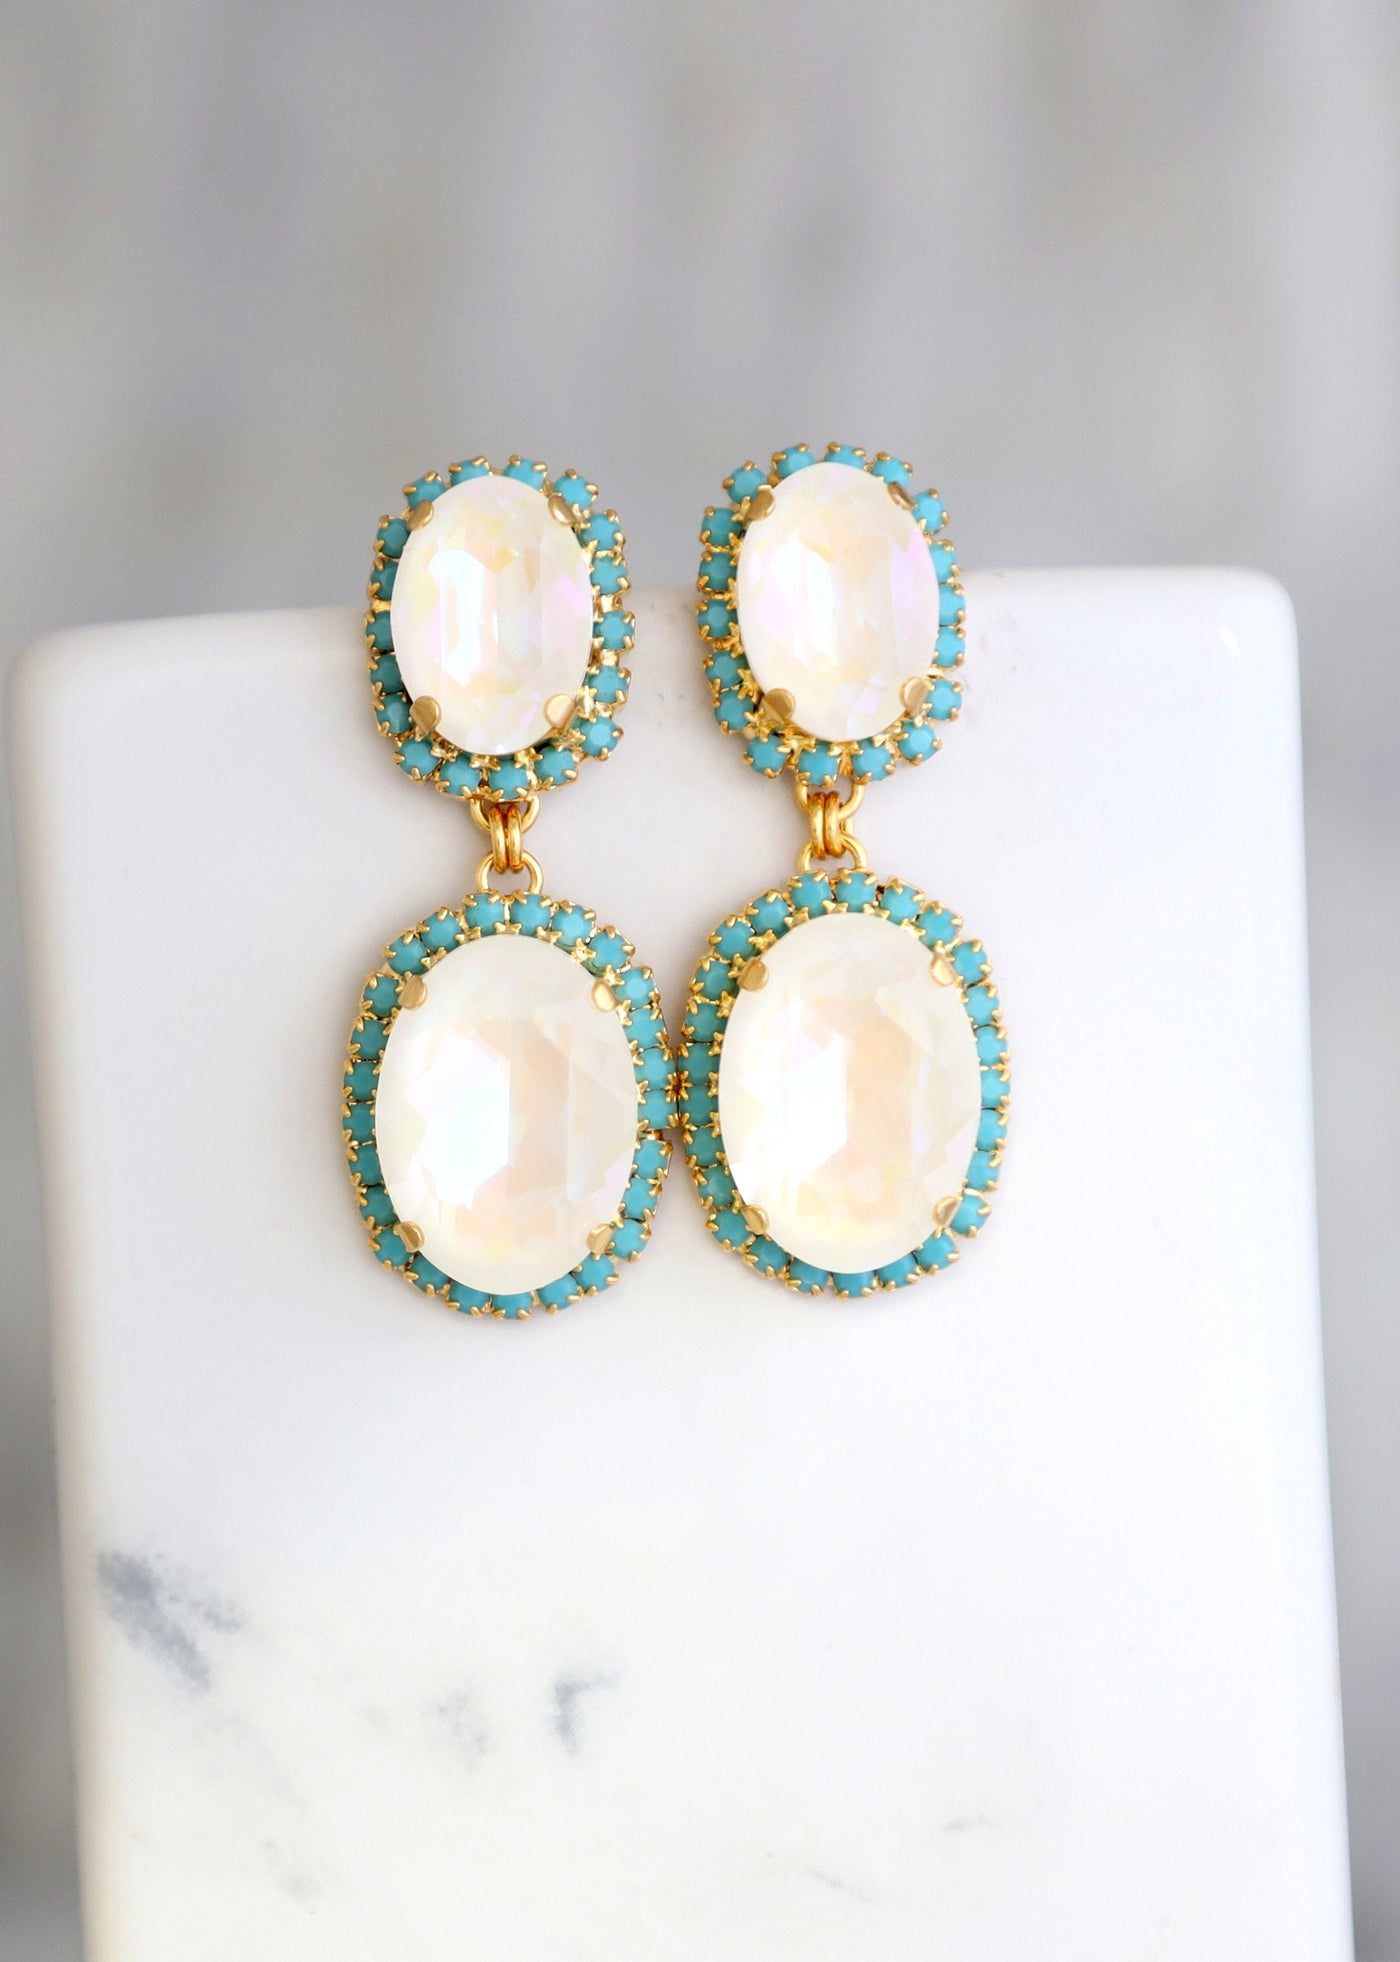 White Opal Earrings, Bridal White Opal Drop Earrings, Bridal Turquoise Chandelier Earrings, Bridal Crystal Earrings, Something Blue